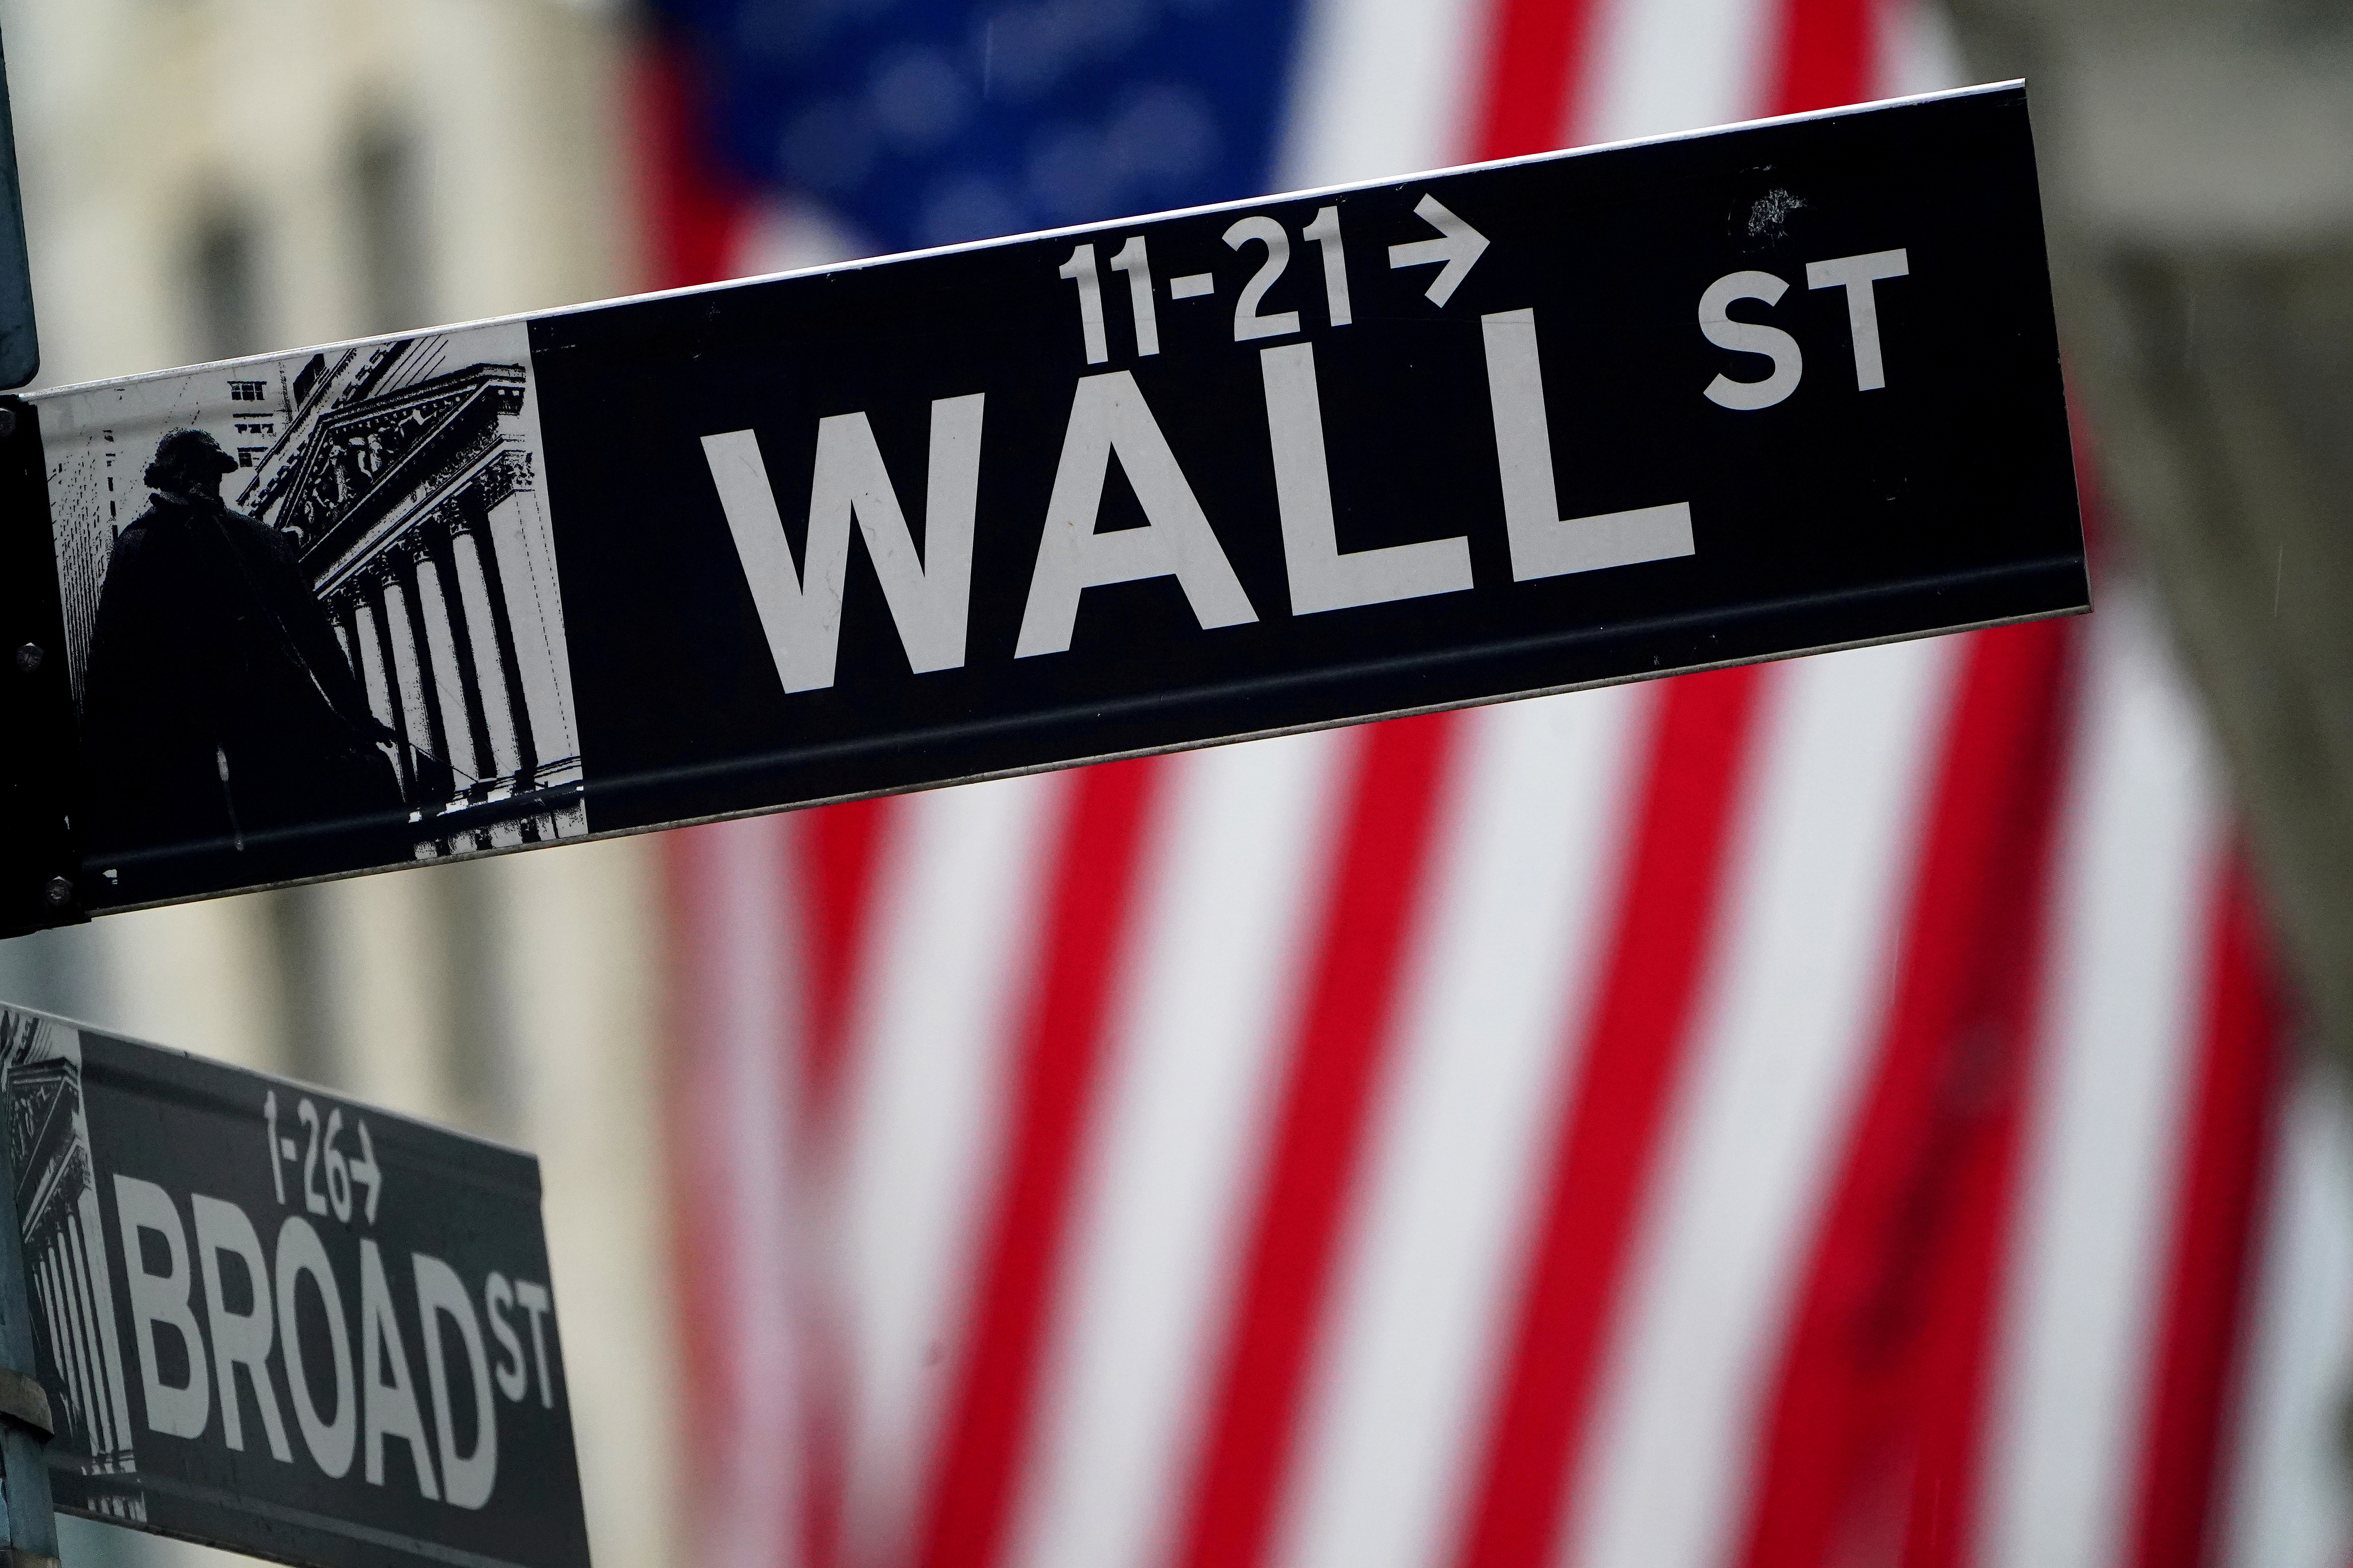 A Wall Street sign outside the New York Stock Exchange in New York City, New York, U.S., October 2, 2020. REUTERS/Carlo Allegri/File Photo